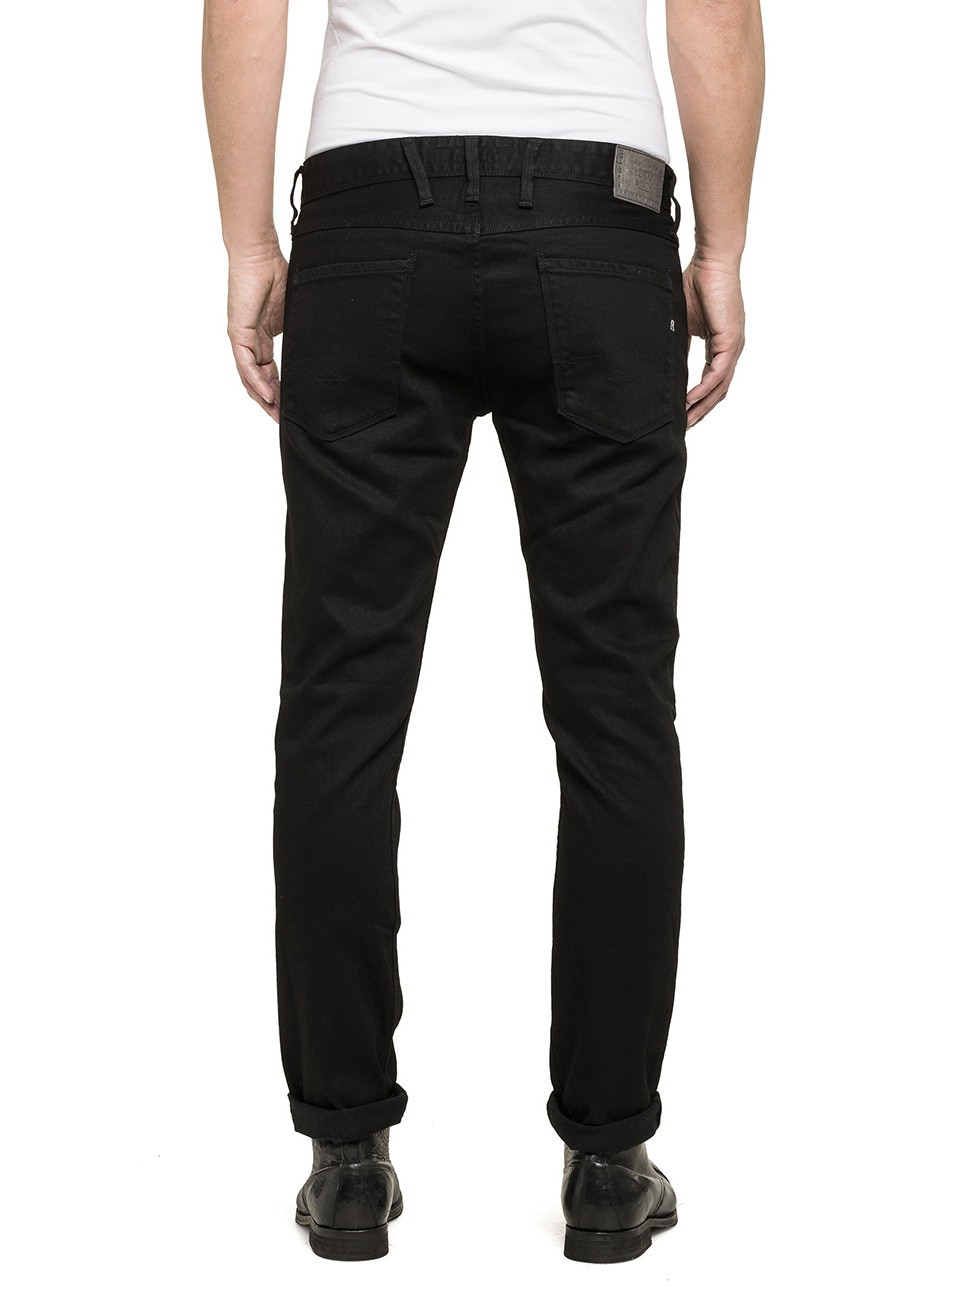 Replay Herren Jeans Anbass - Slim Fit - Black